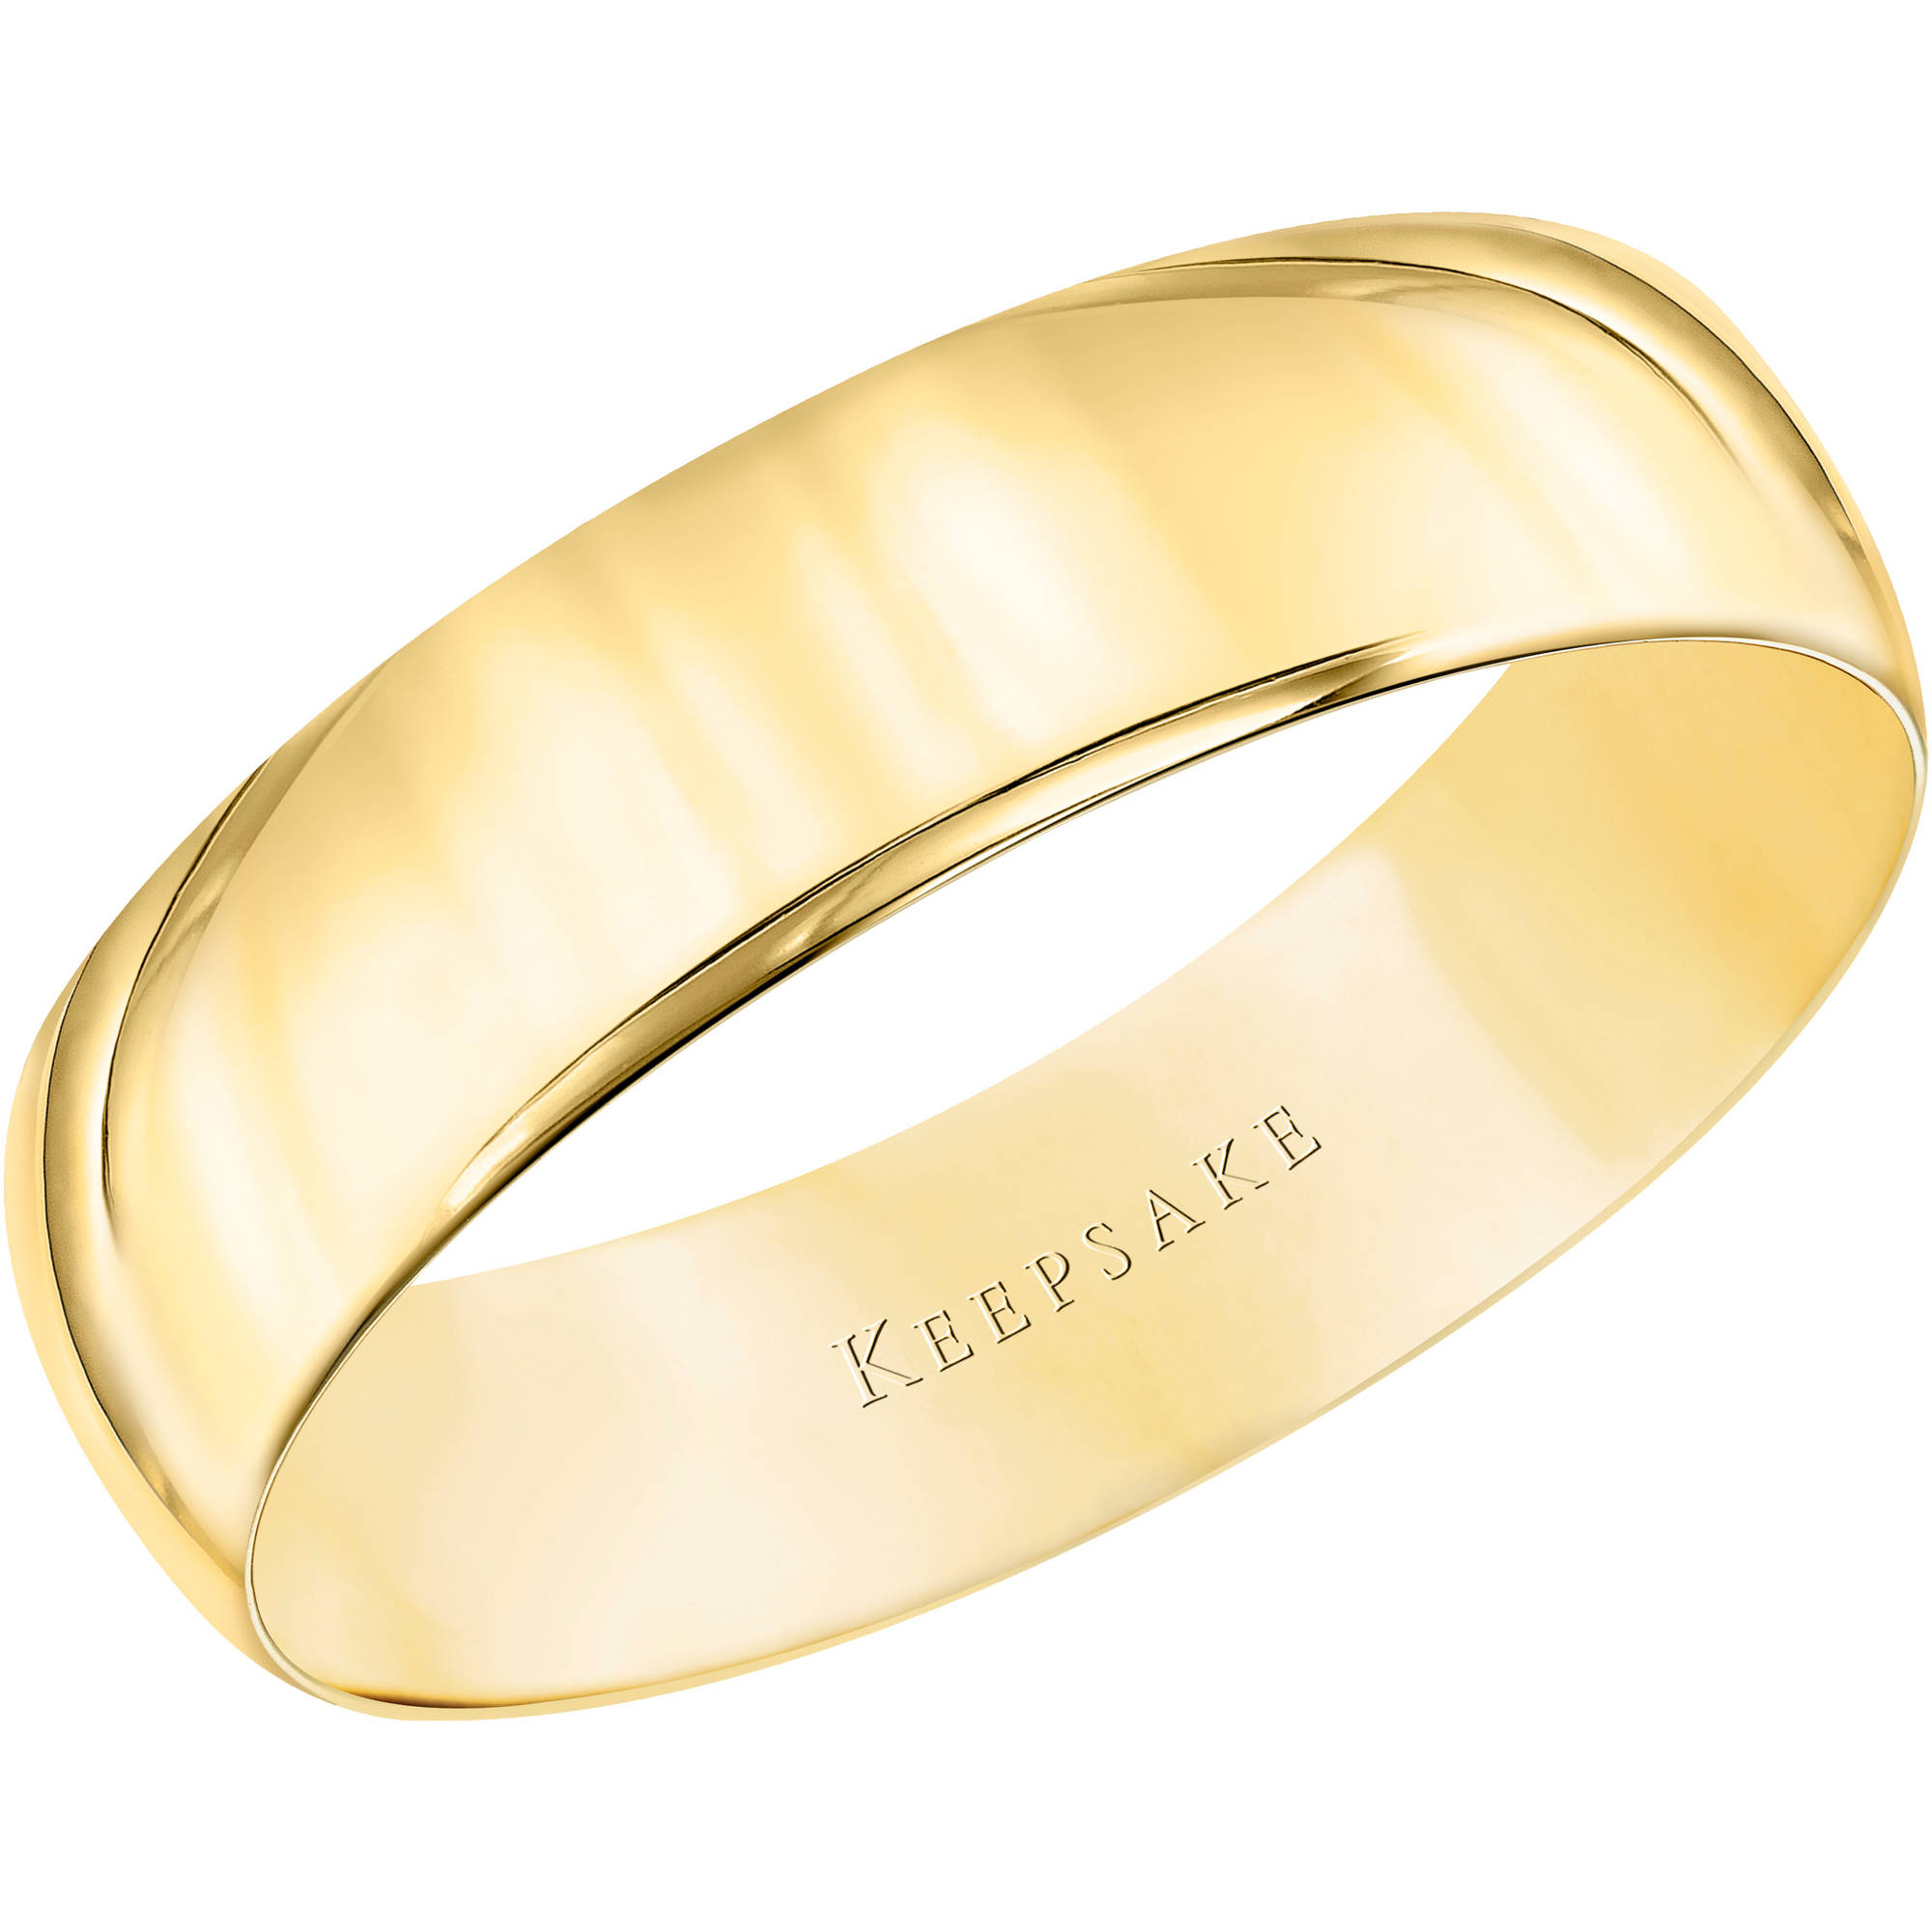 flexible wedding ring Keepsake 10kt Yellow Gold Wedding Band With High Polish Finish 5mm